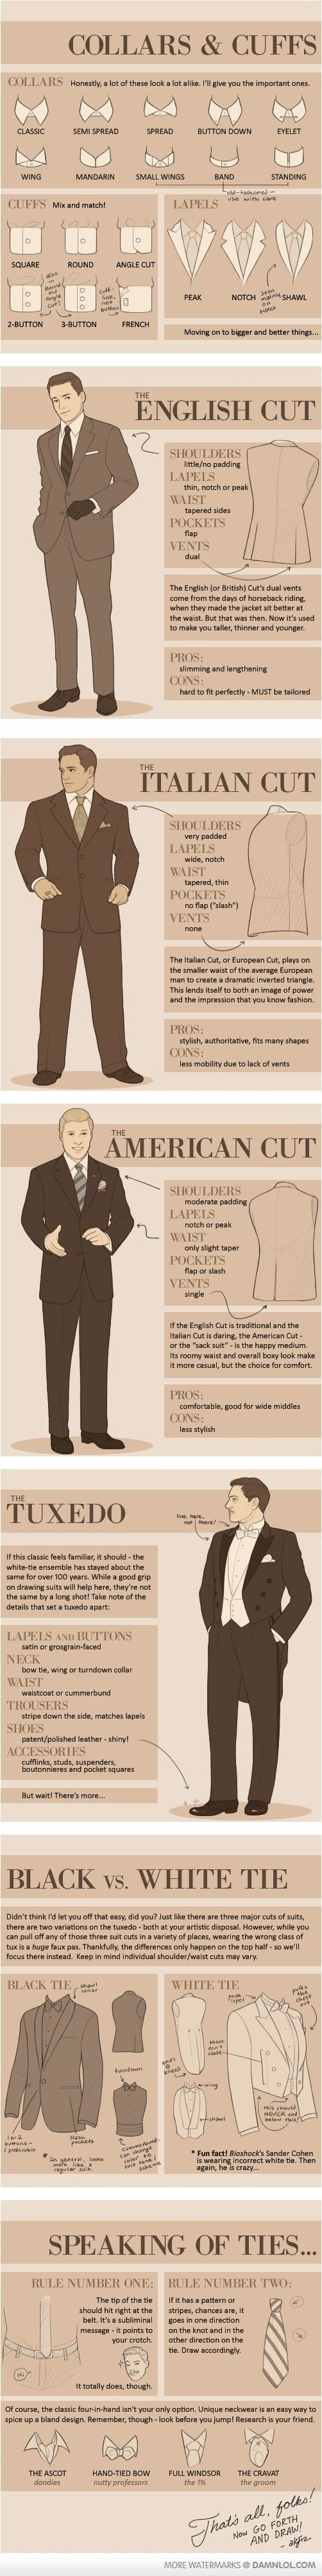 Mens Formal Wear Infographic - excellent data on collars cuffs, ties, tuxes, suits, etc.